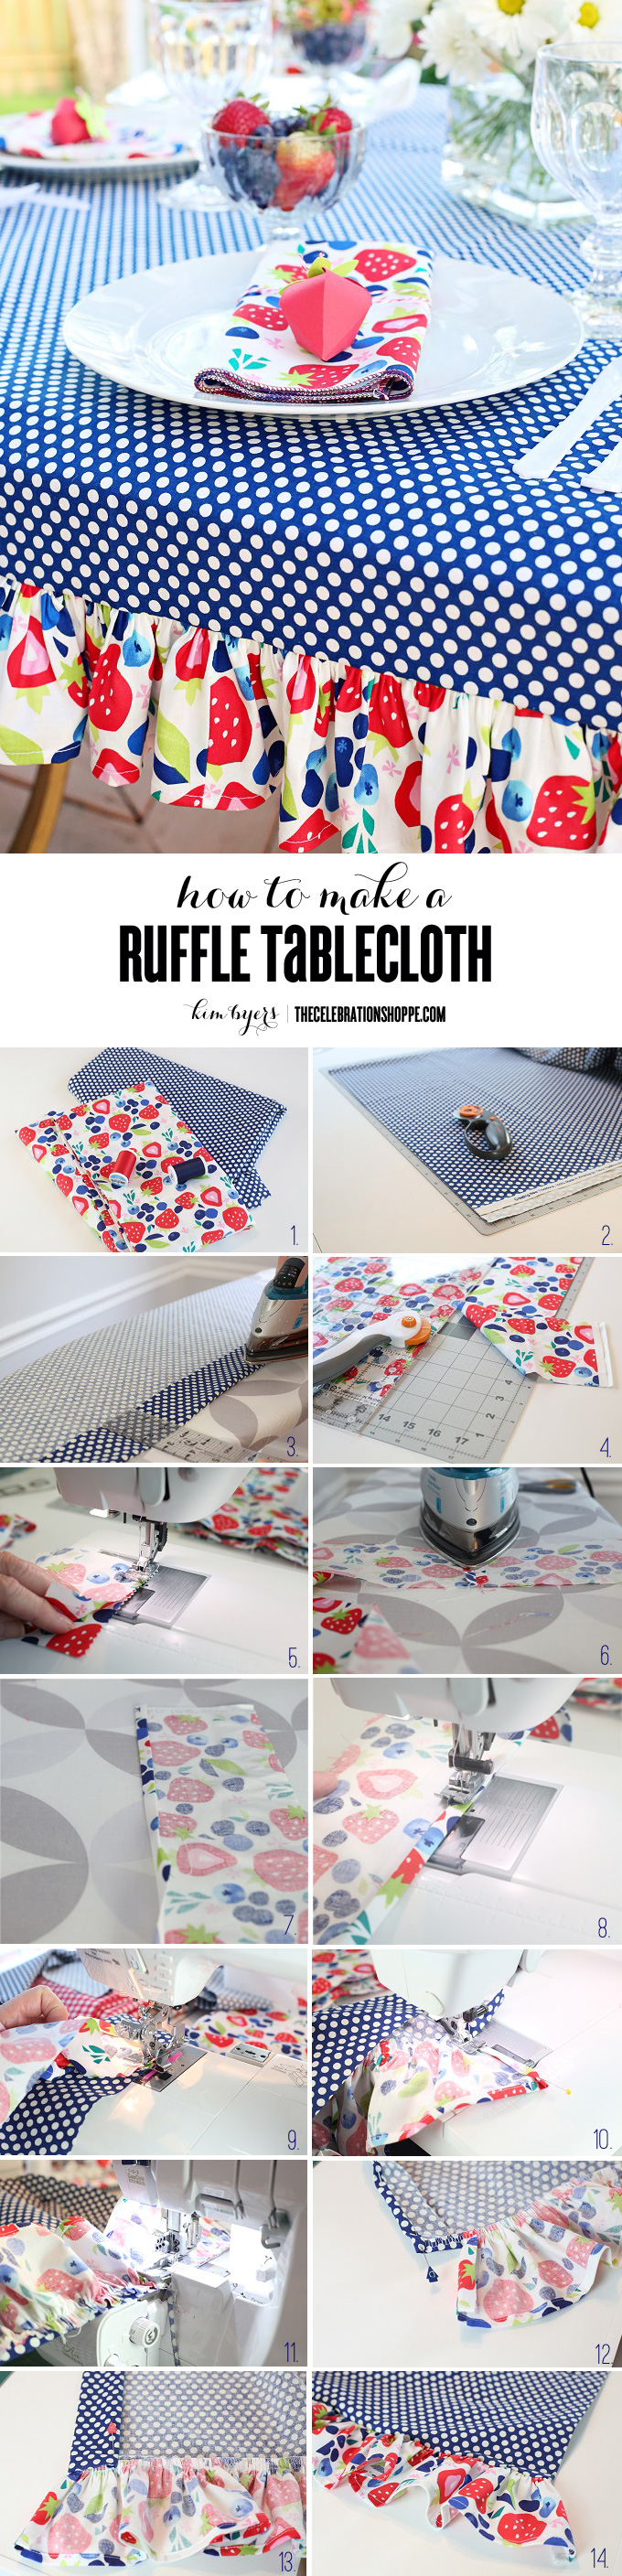 How To Sew A Ruffle Tablecloth | Kim Byers